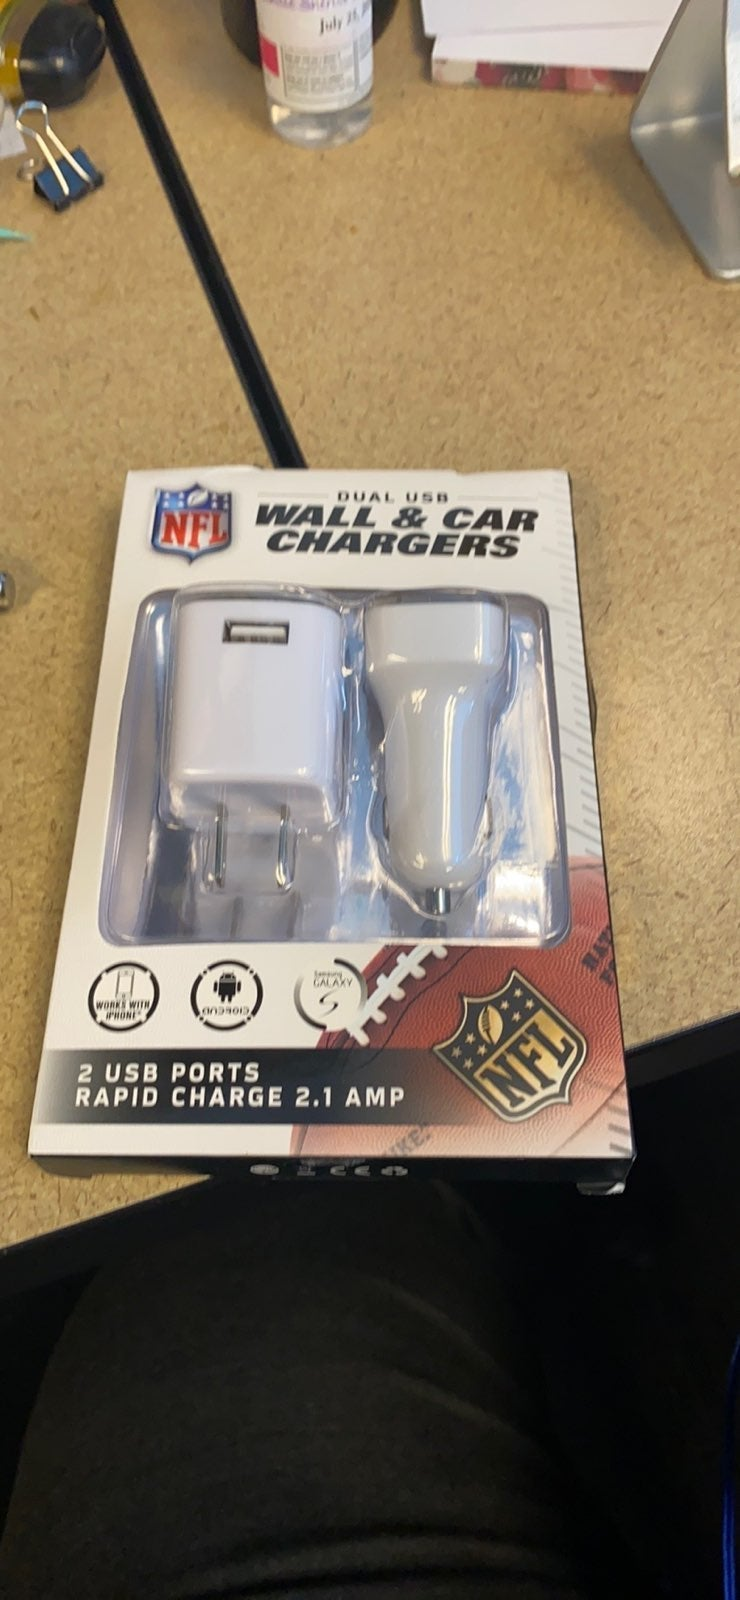 Wall and car chargers